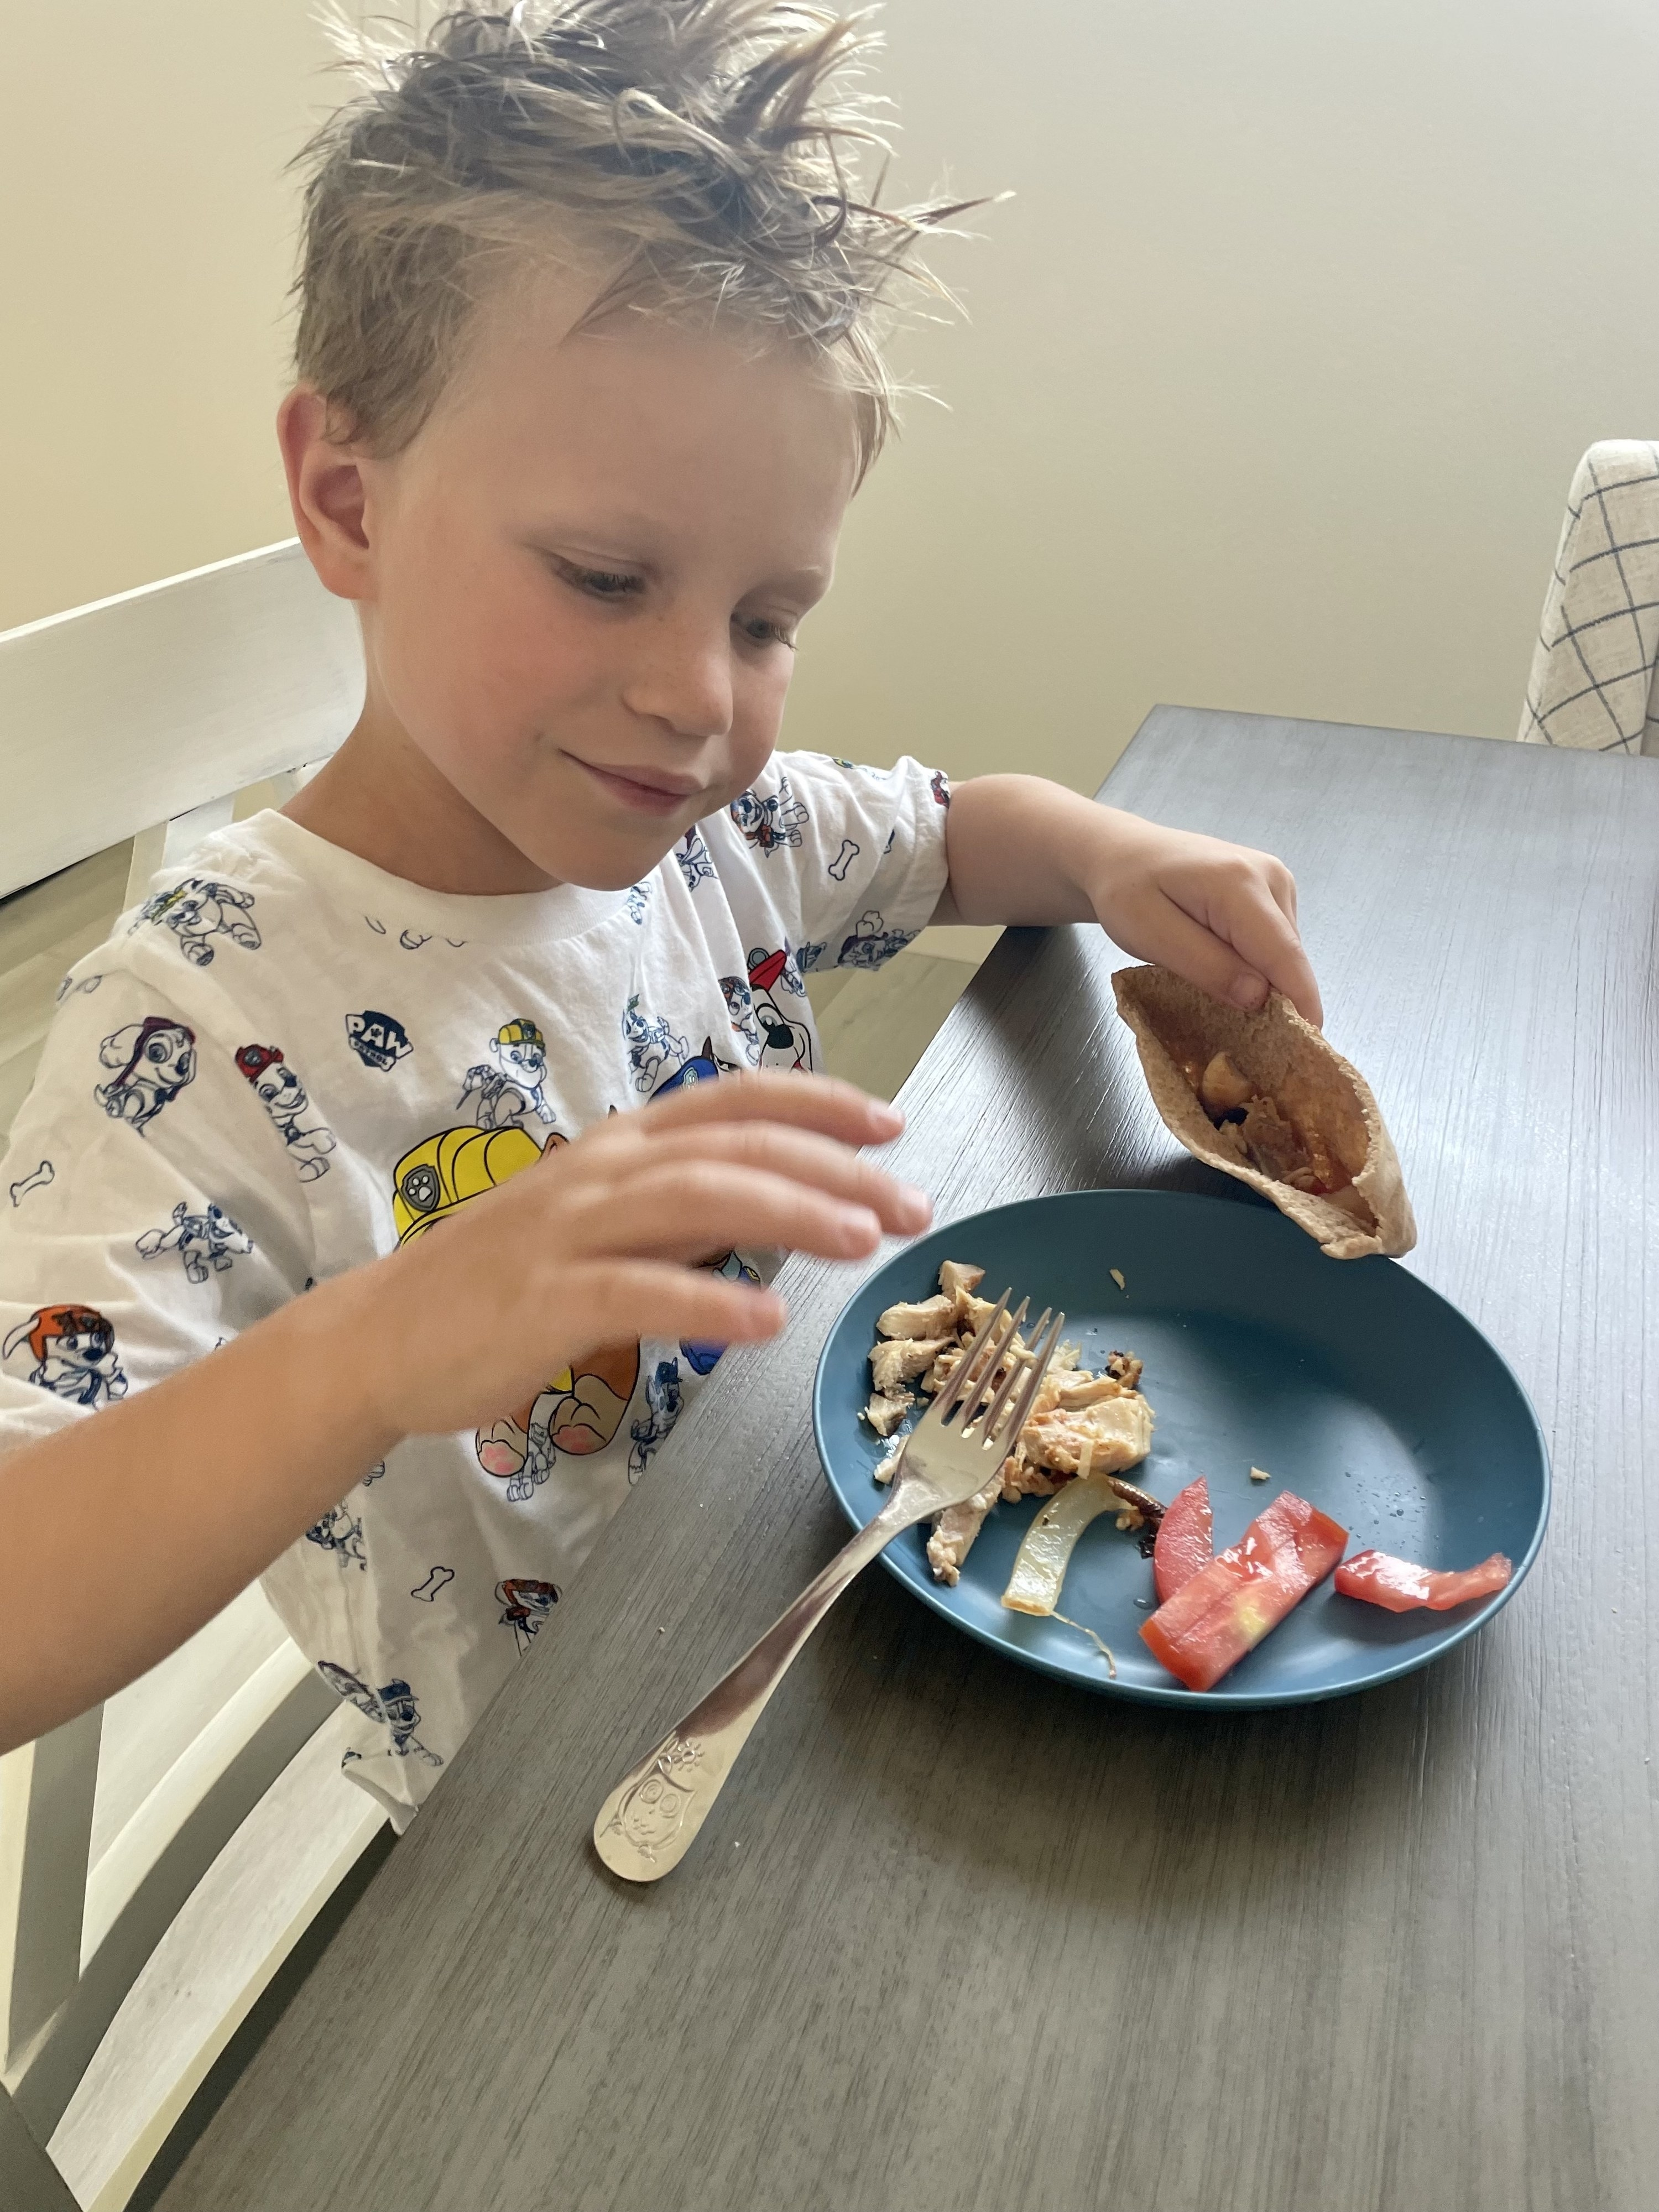 The author's kid eating a chicken gyro